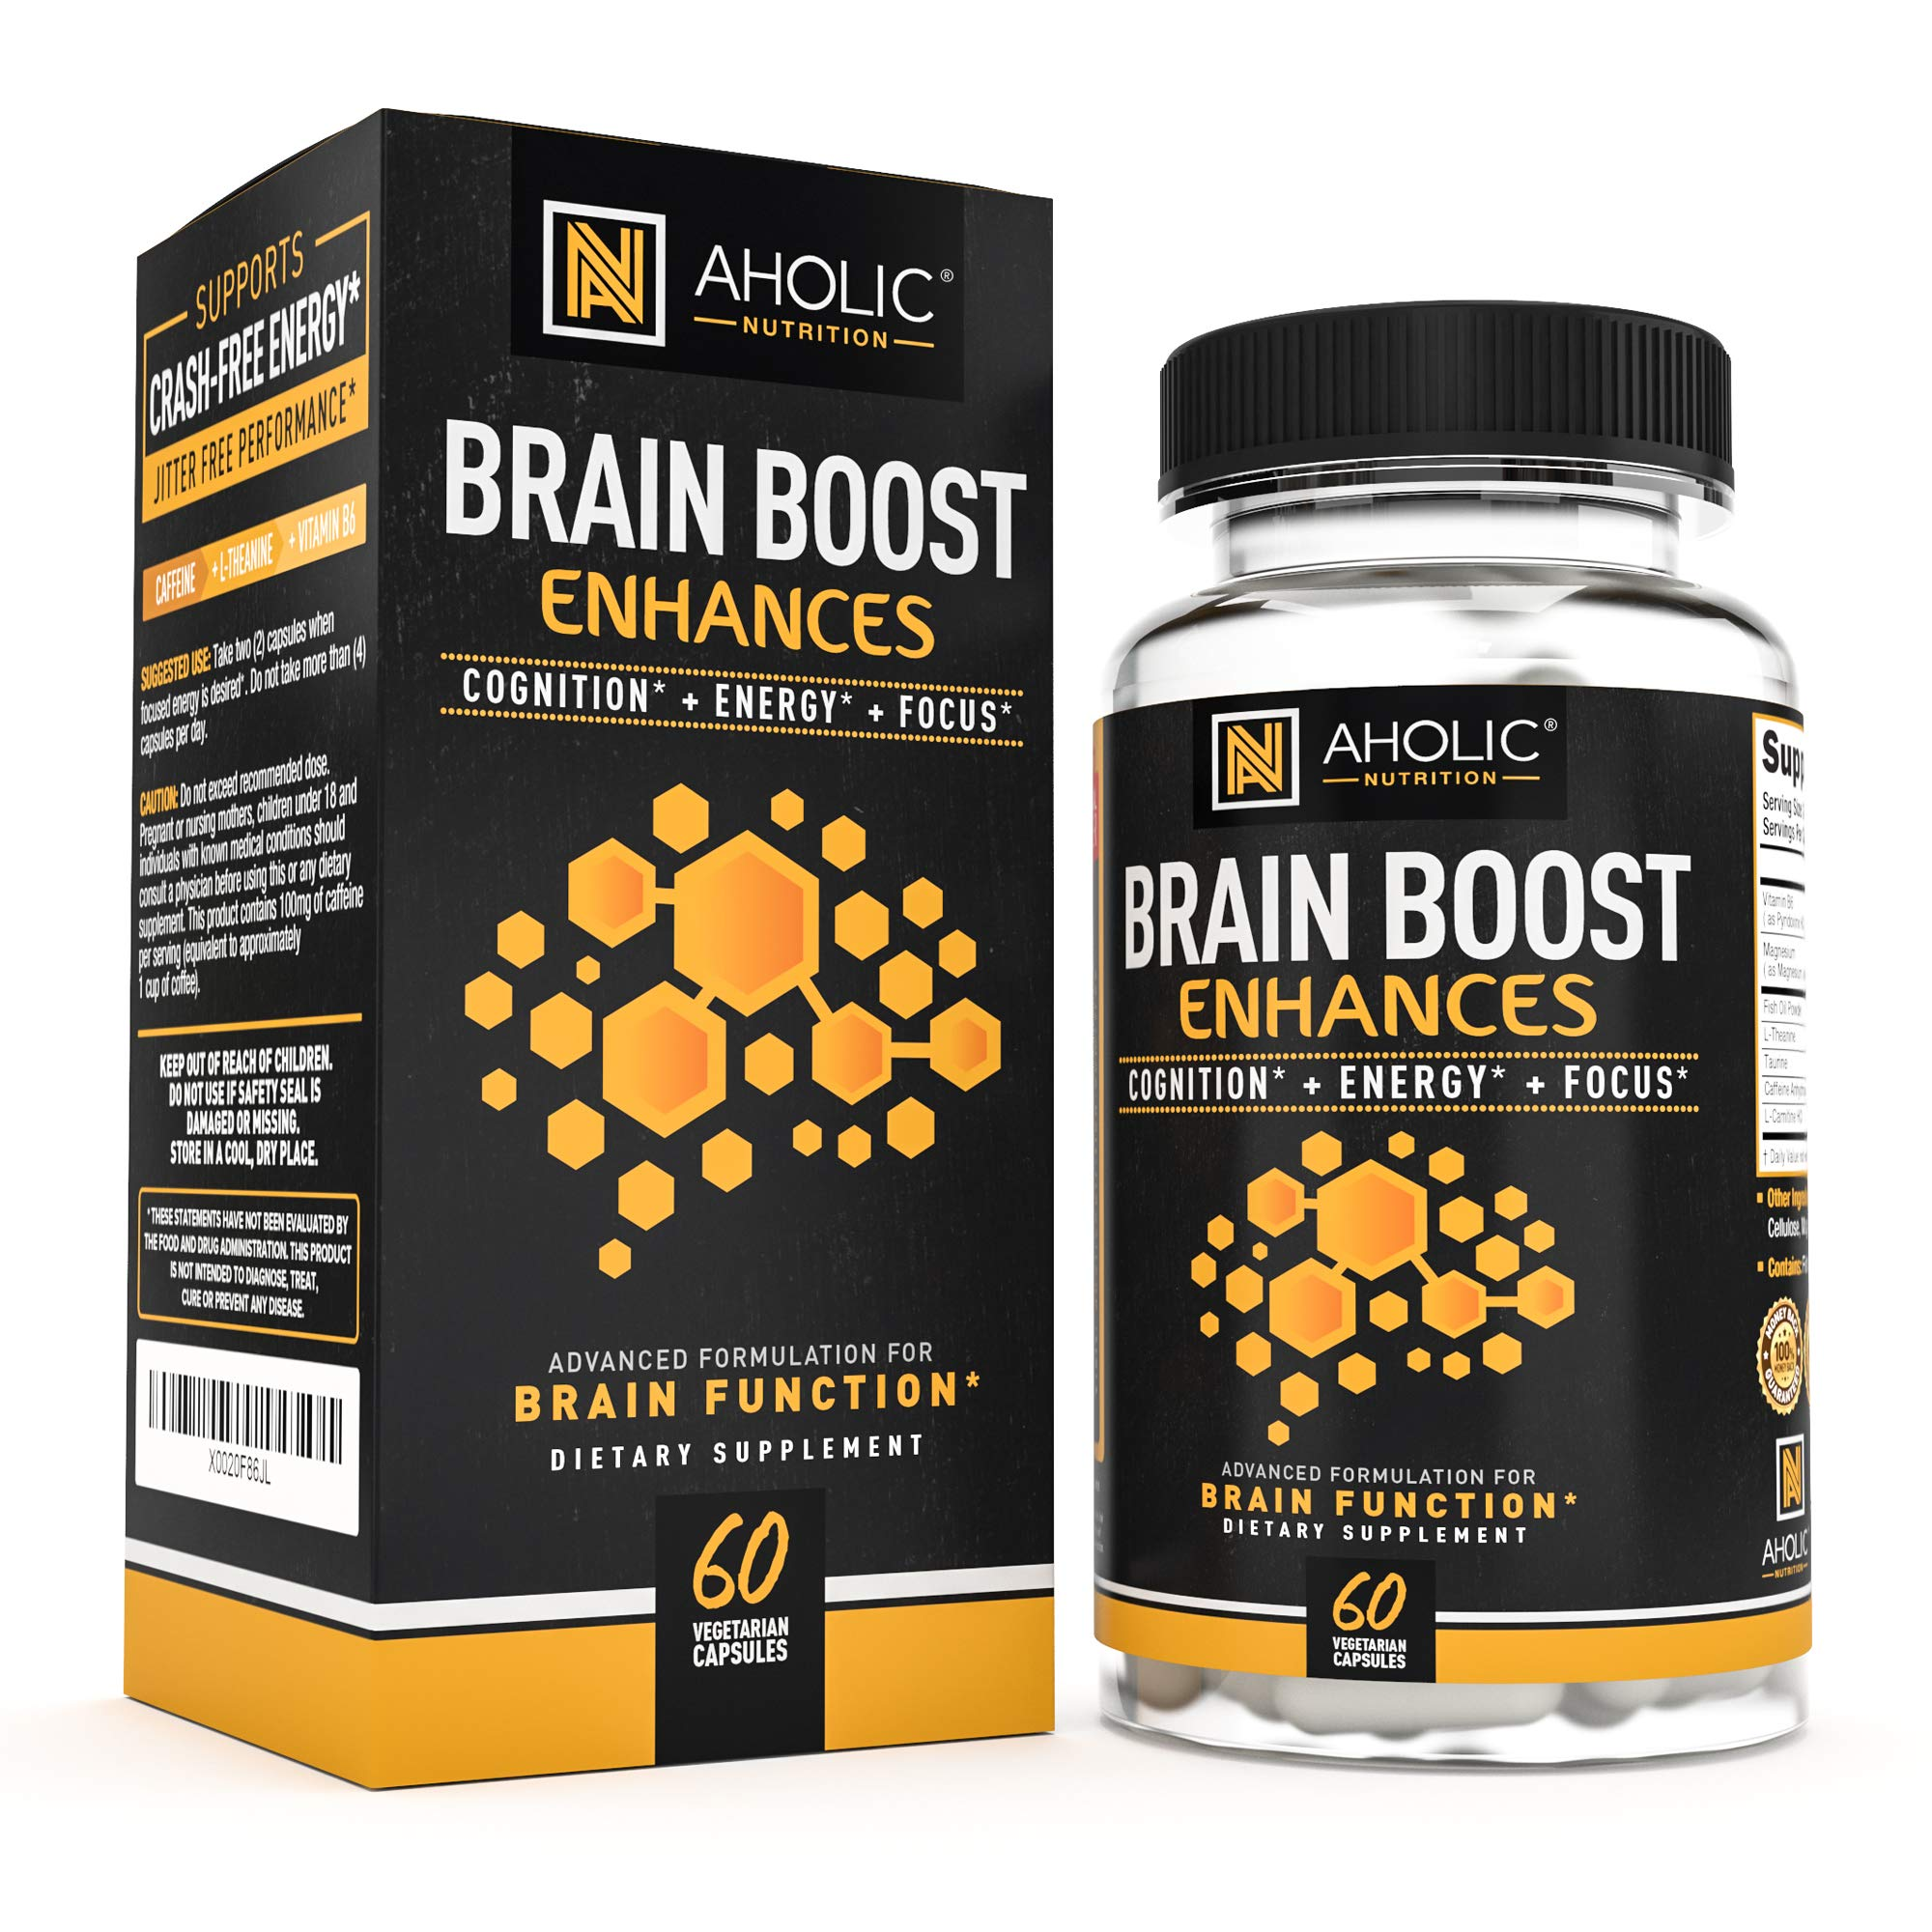 Premium Energy Pills with Caffeine L-Theanine Vitamin B6 Fish Oil + More! All Natural Clean Focused Energy for Mind & Body! Keto Pills for Women and Men - Pre Workout Energy Supplement for Keto Diet by AHOLIC NUTRITION